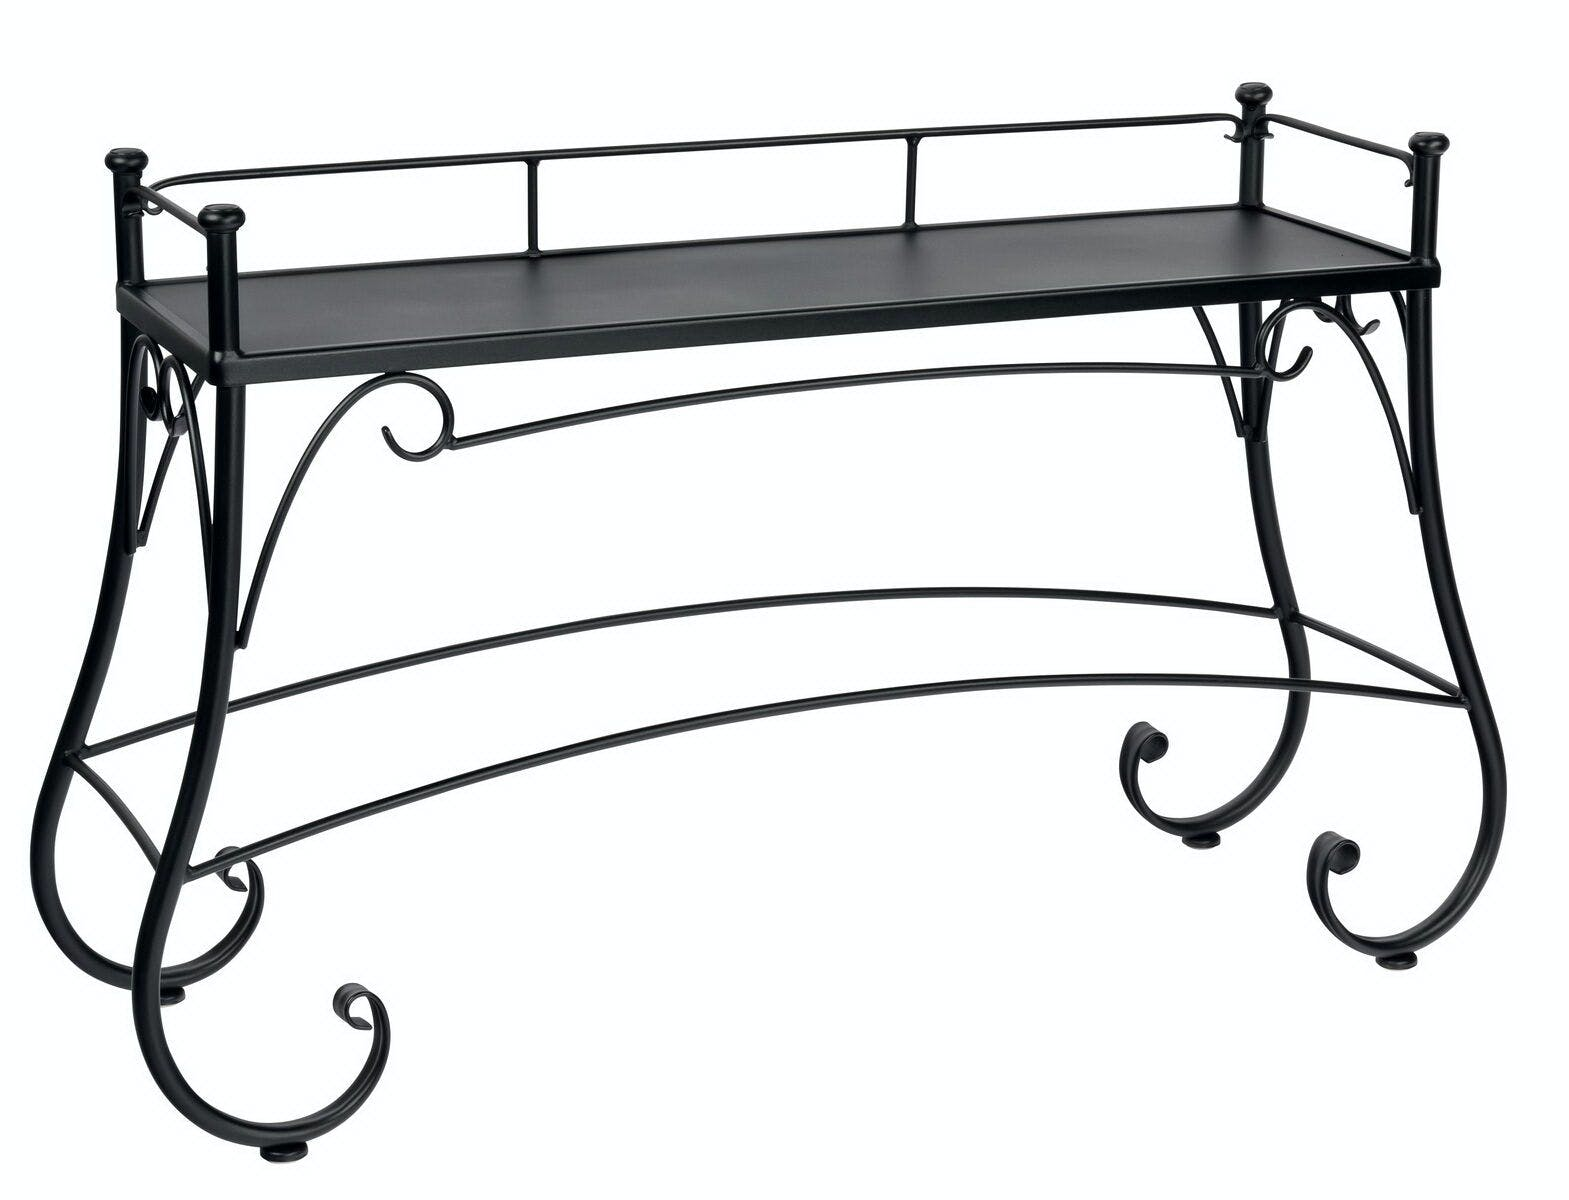 Picture of: Outdoor Patio Console Table By Woodard 190202 Patios Usa Usa Questions Call 888 643 6003